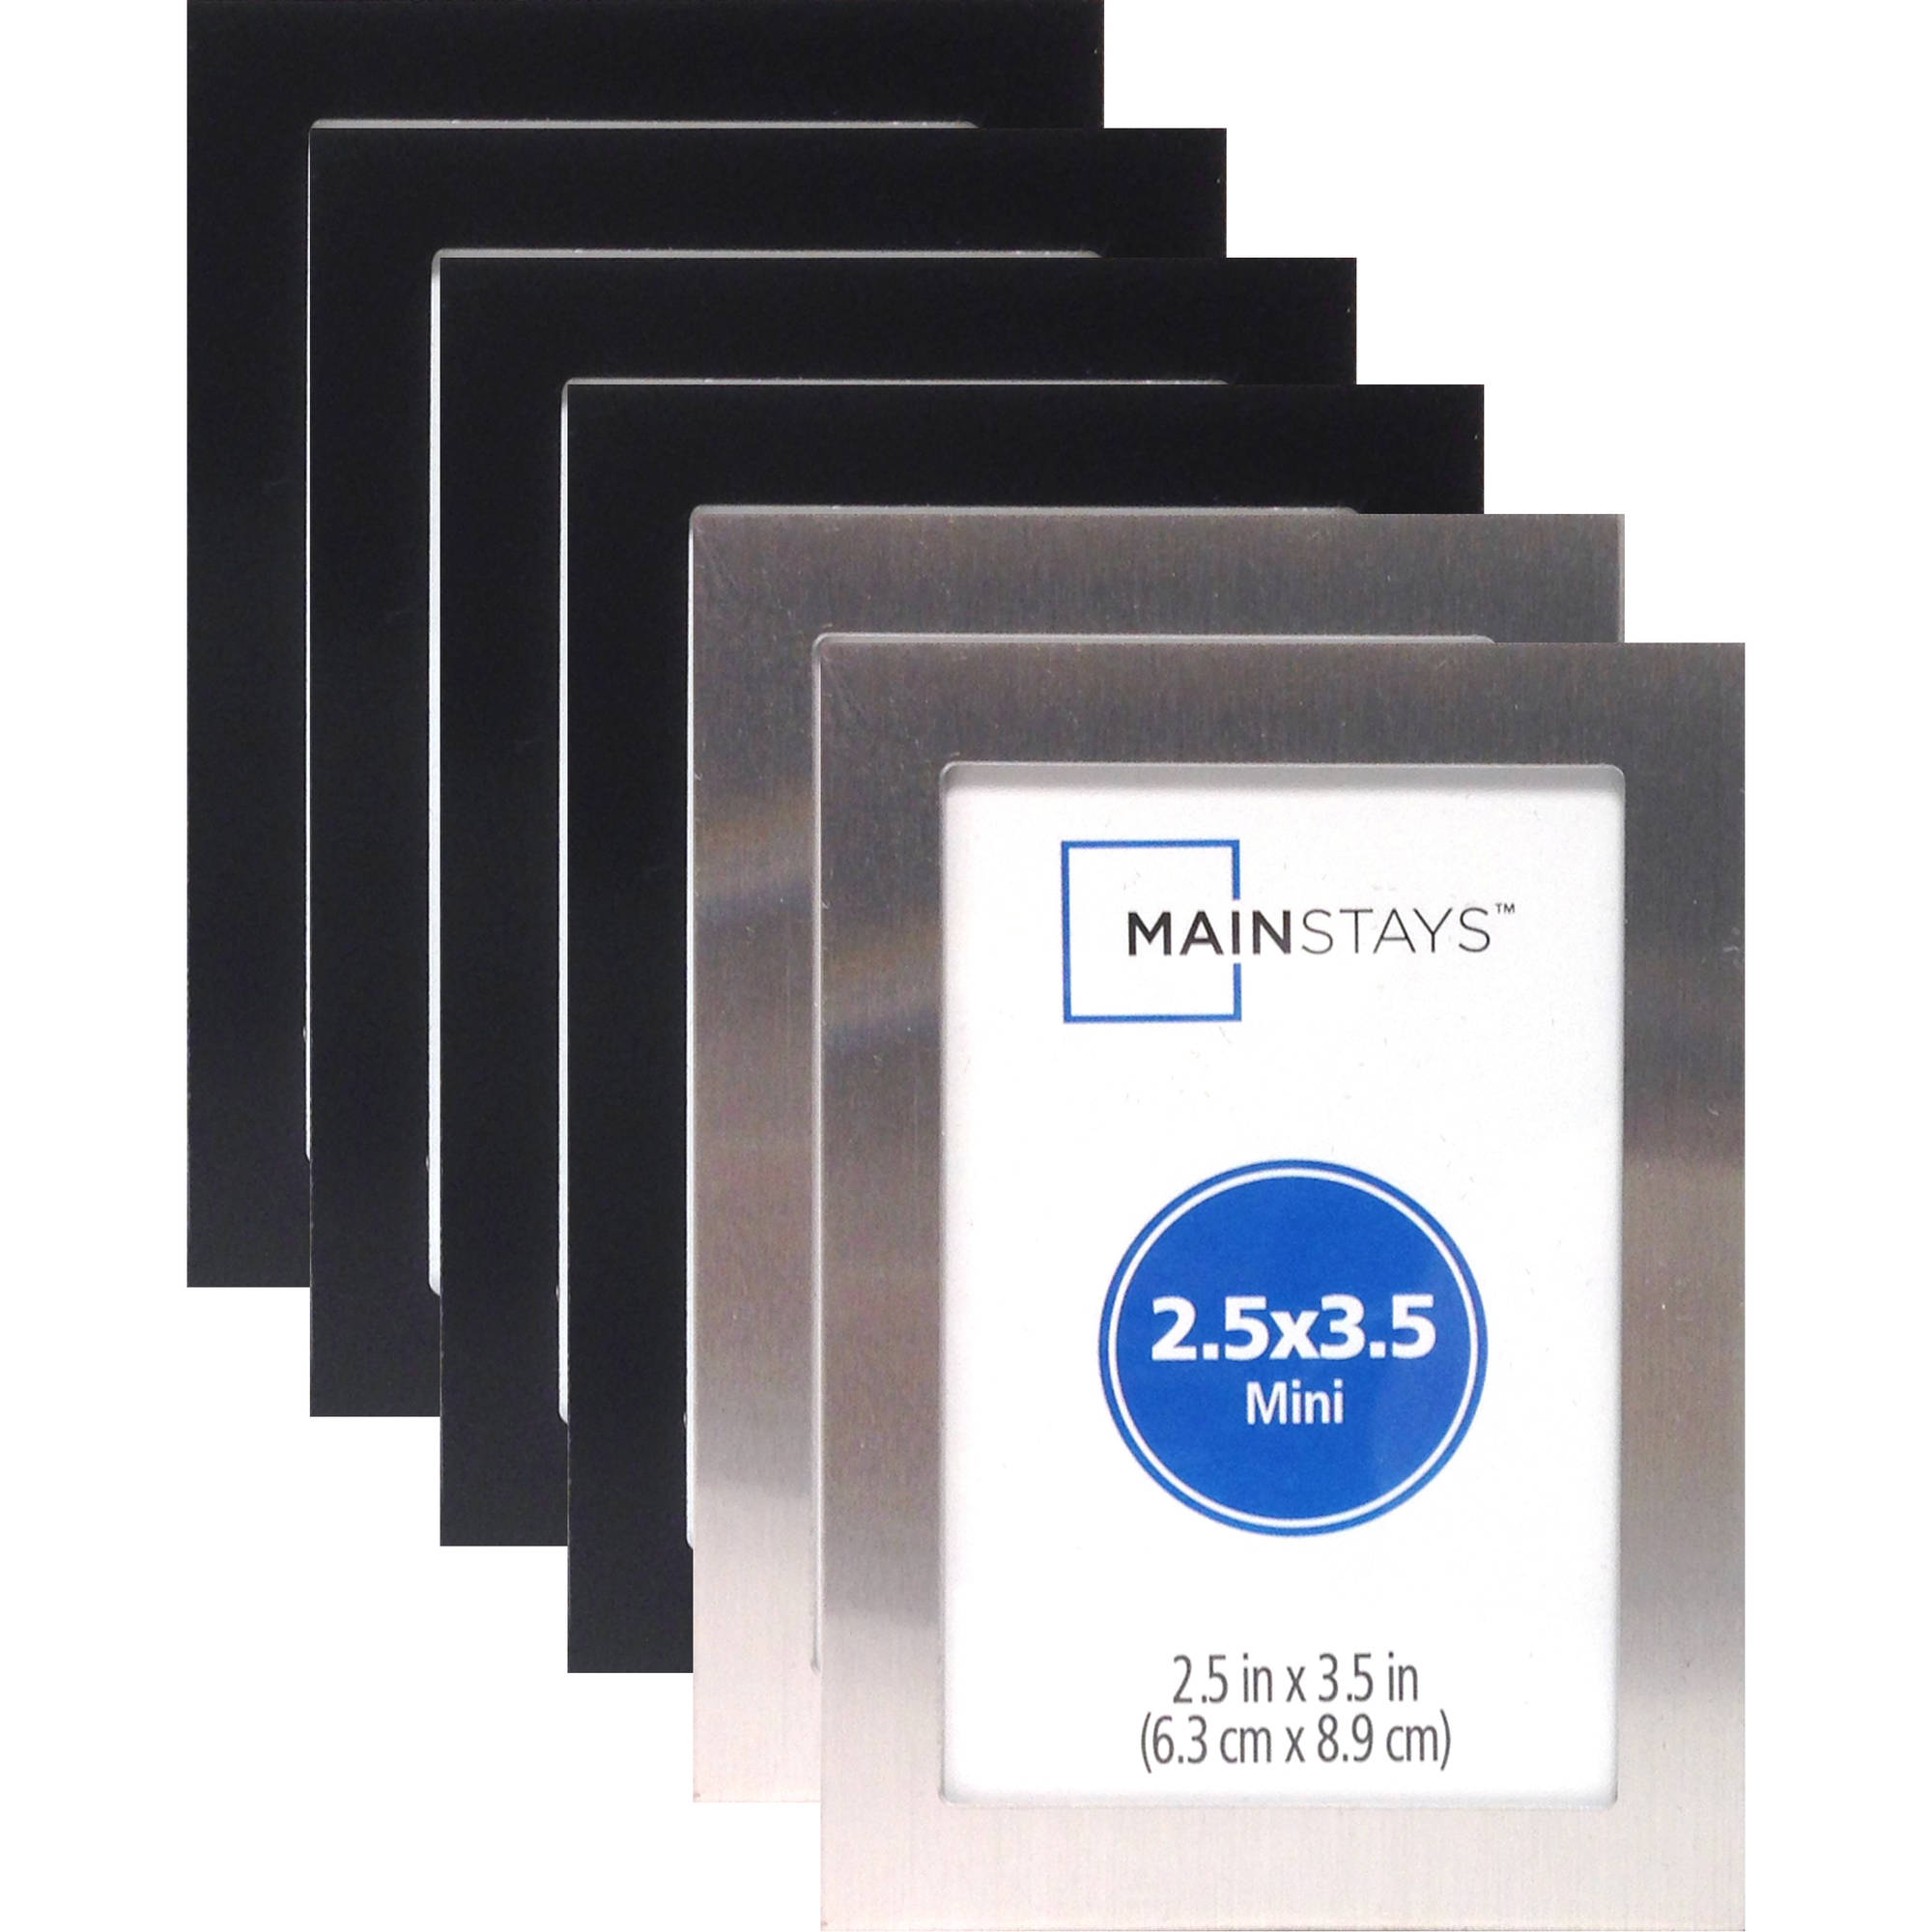 25 x 35 metal mini frame assortment set of 6 4 black and 2 silver walmartcom - Mini Frame